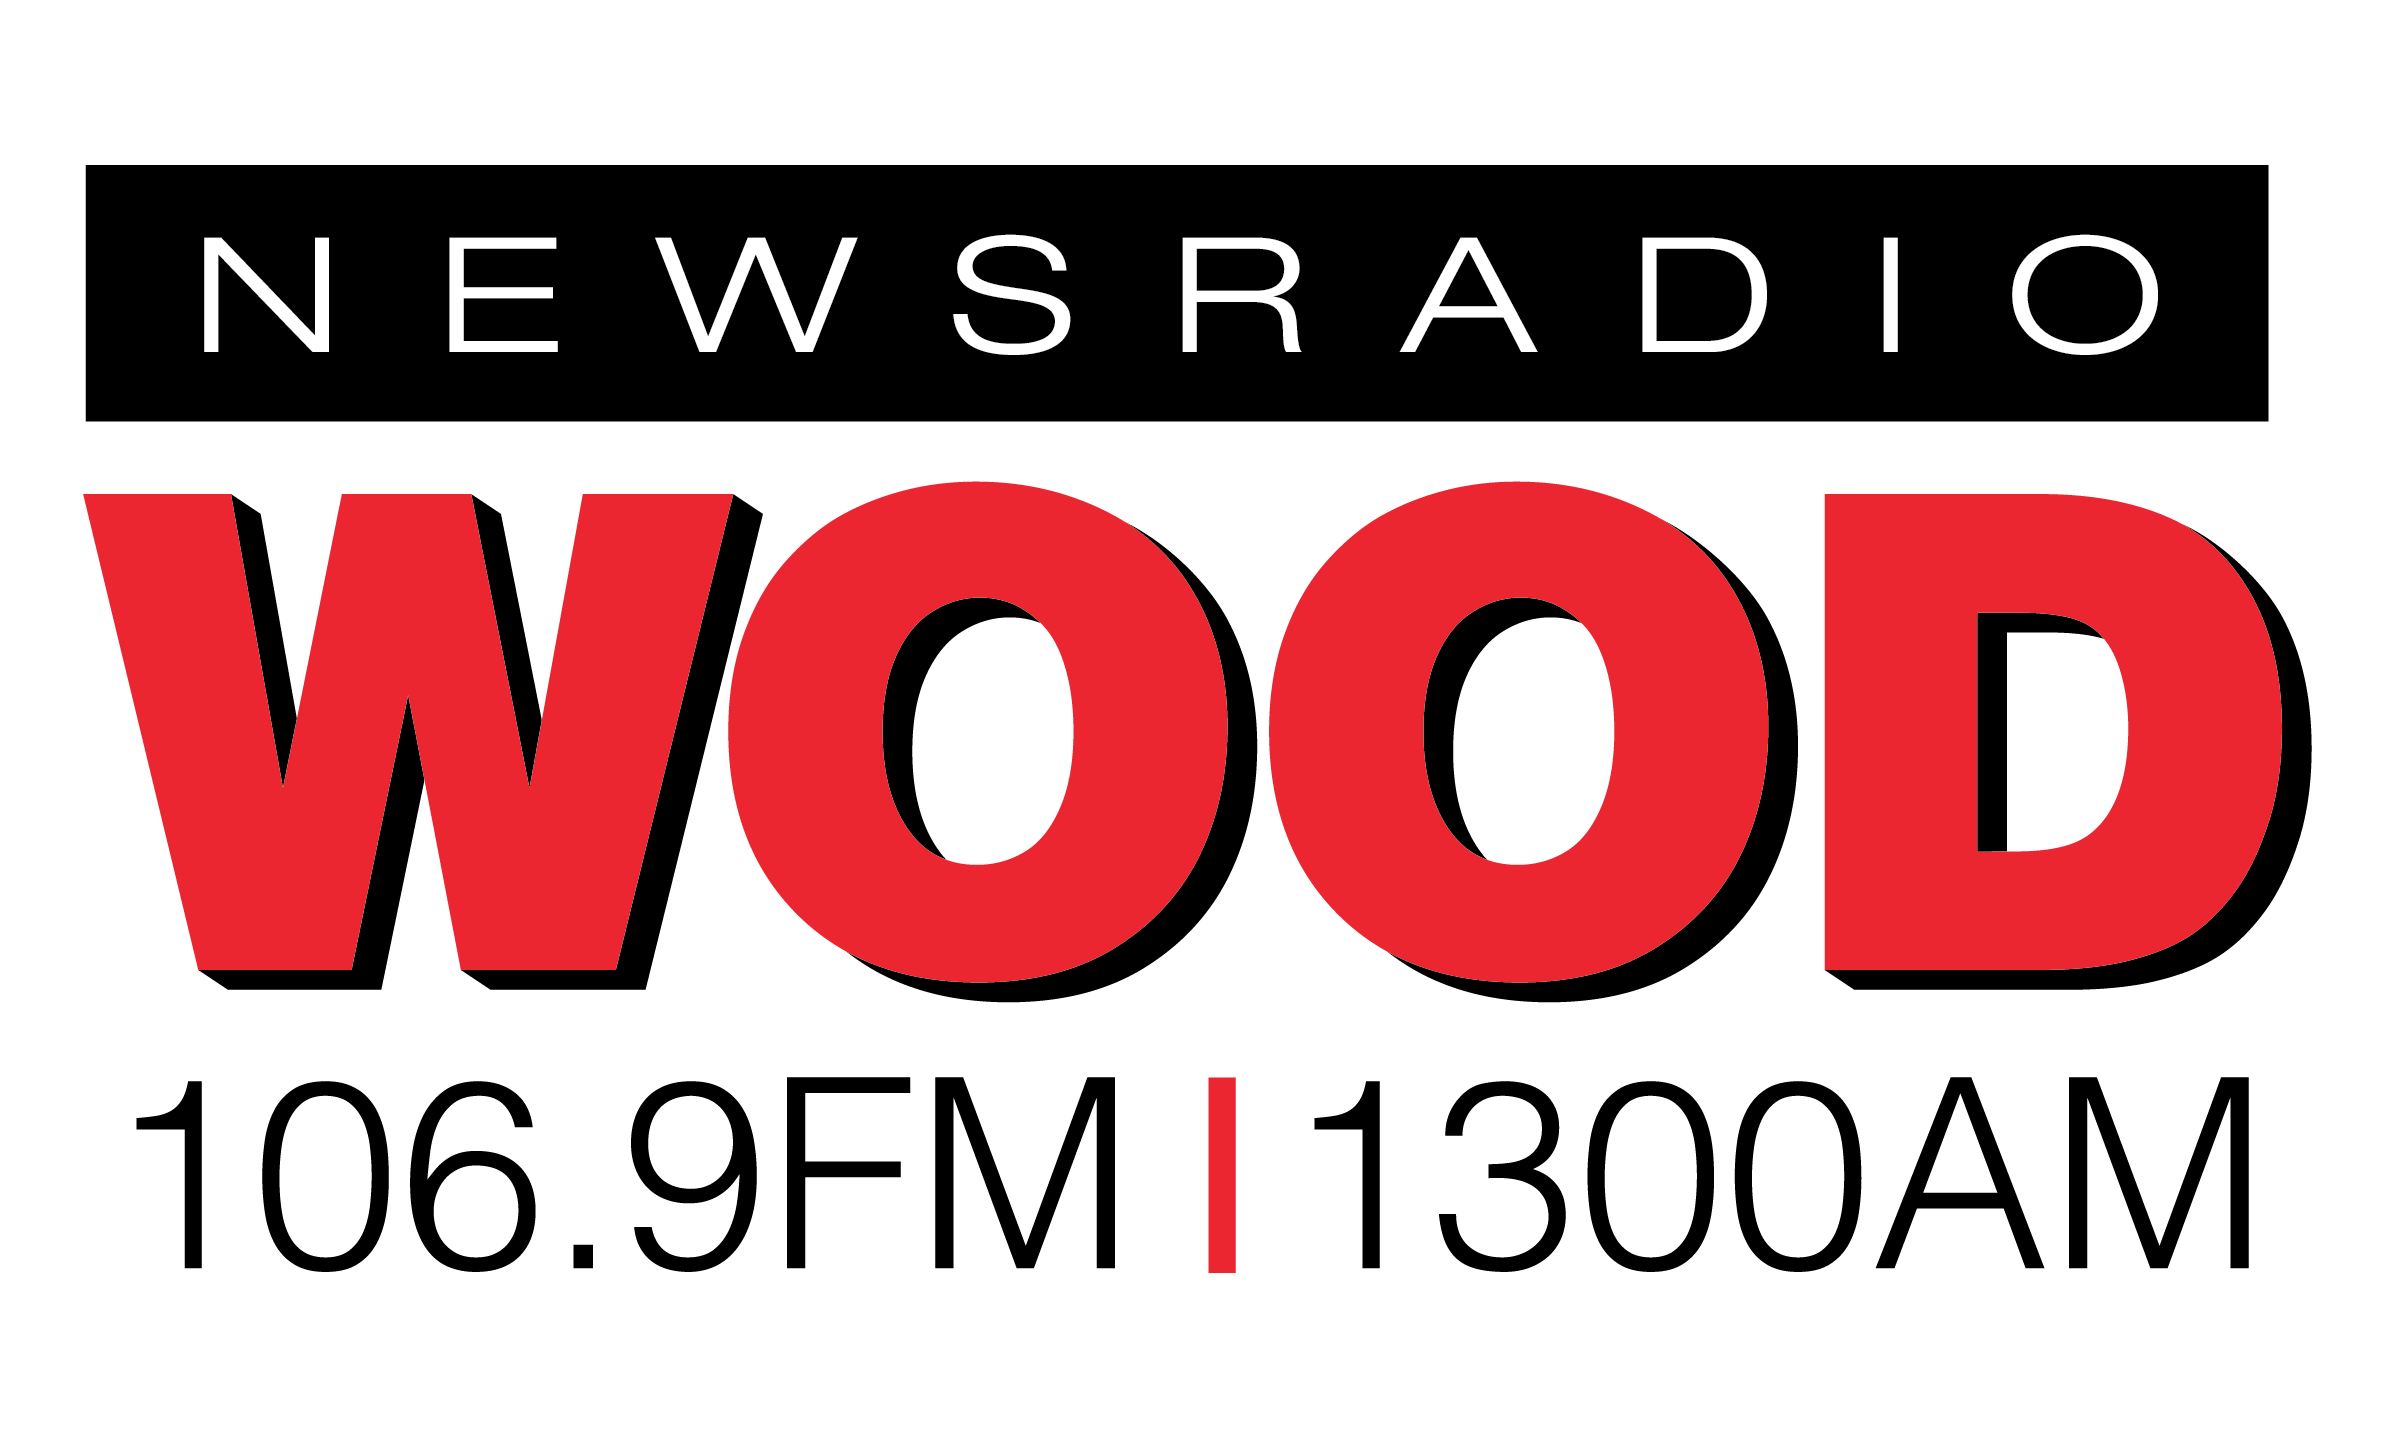 wood radio_1556193182442.png.jpg